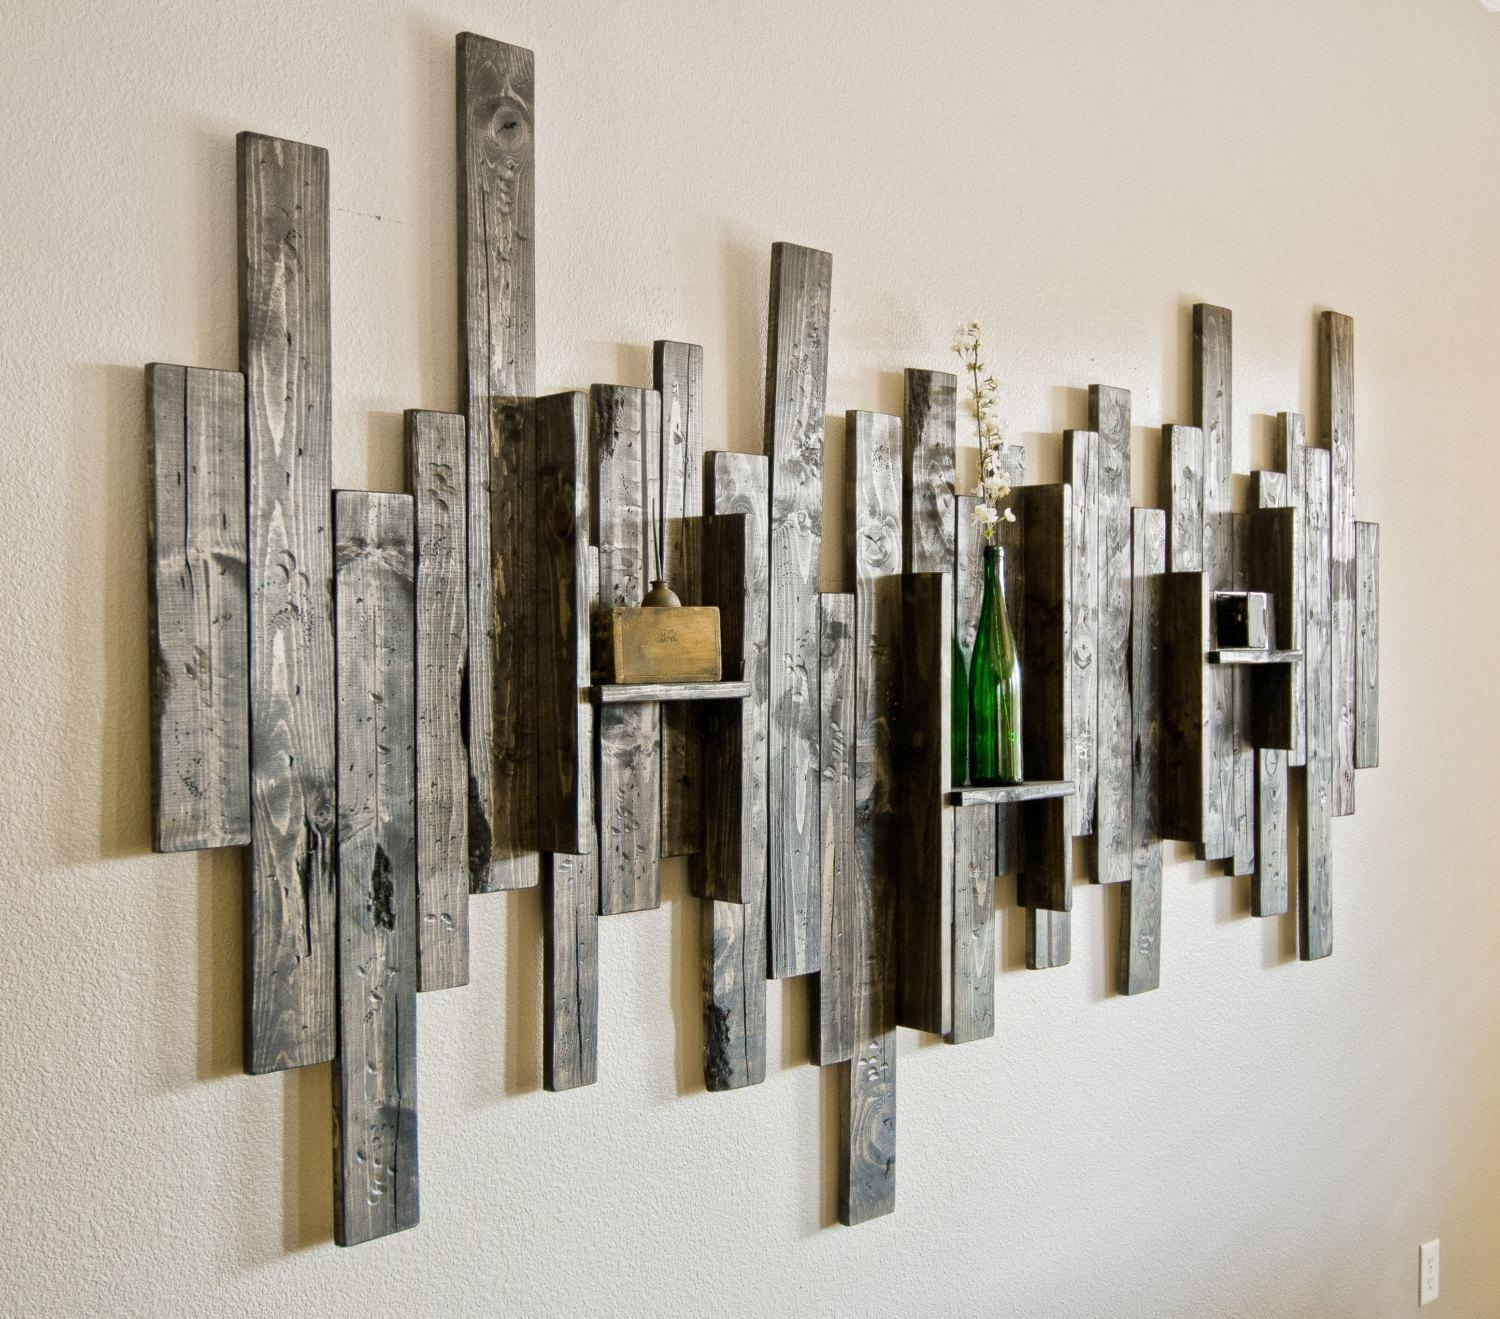 Rustic Display Shelf Decorative Wall Art Intended For Large Unique Wall Art (View 9 of 20)